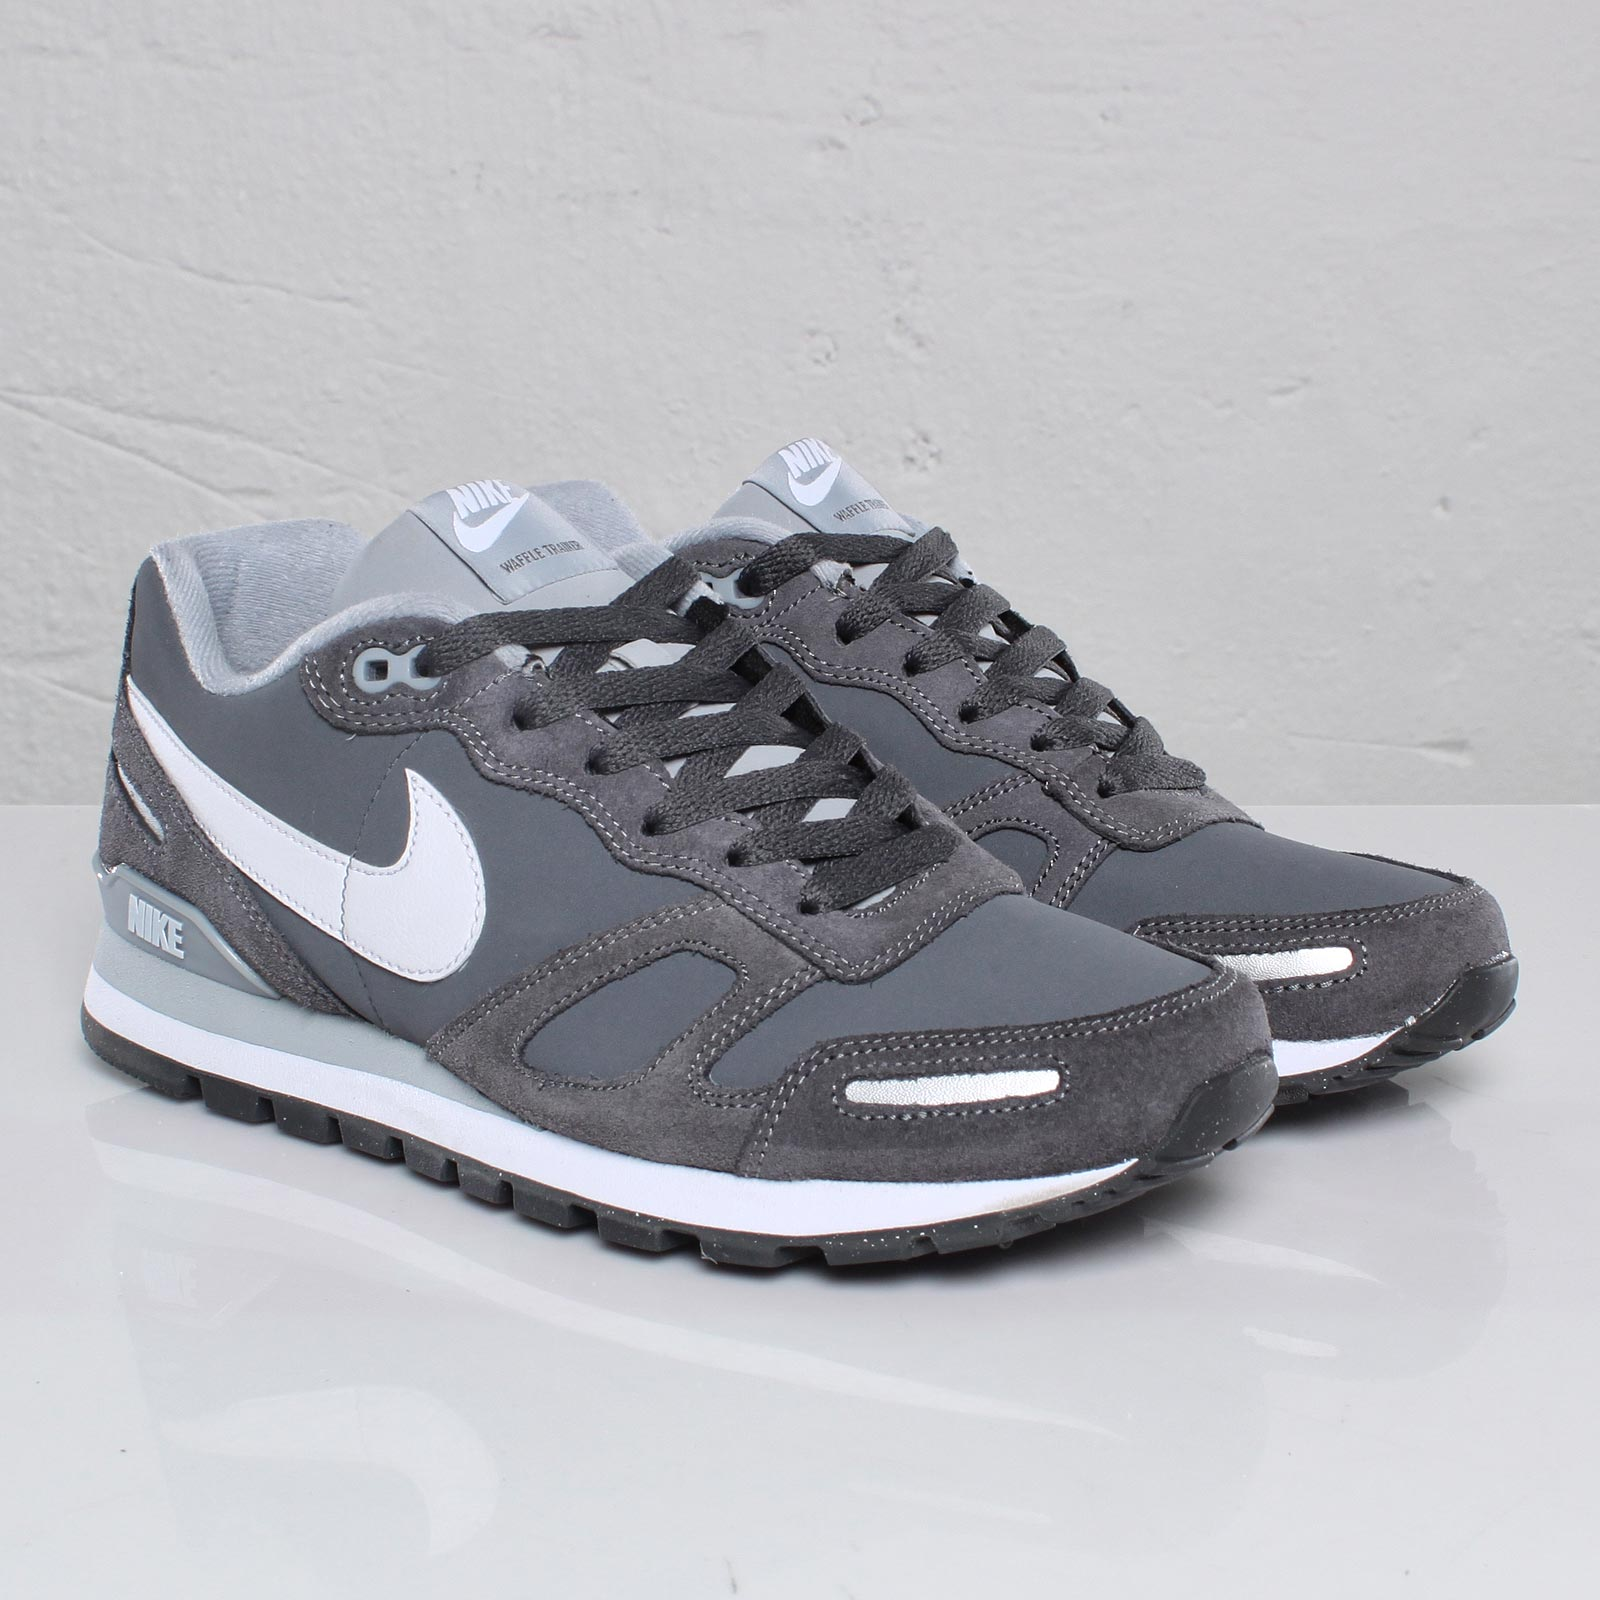 new styles 3cd5a bffac Nike Air Waffle Trainer Leather